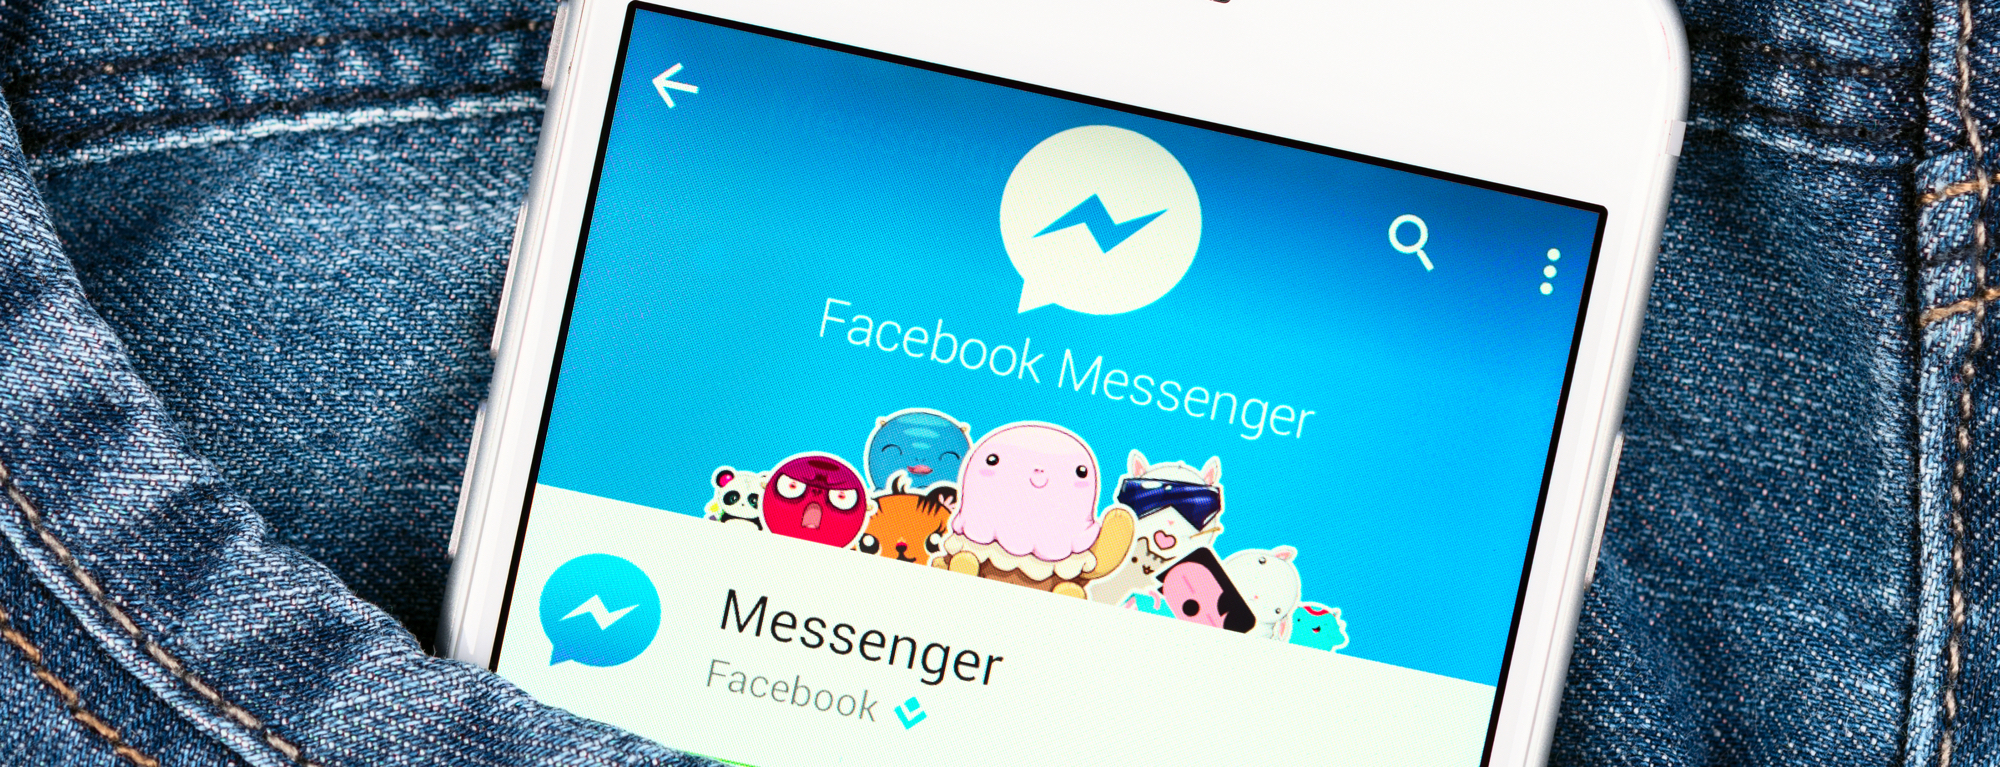 facebook messenger testing voice to text conversions